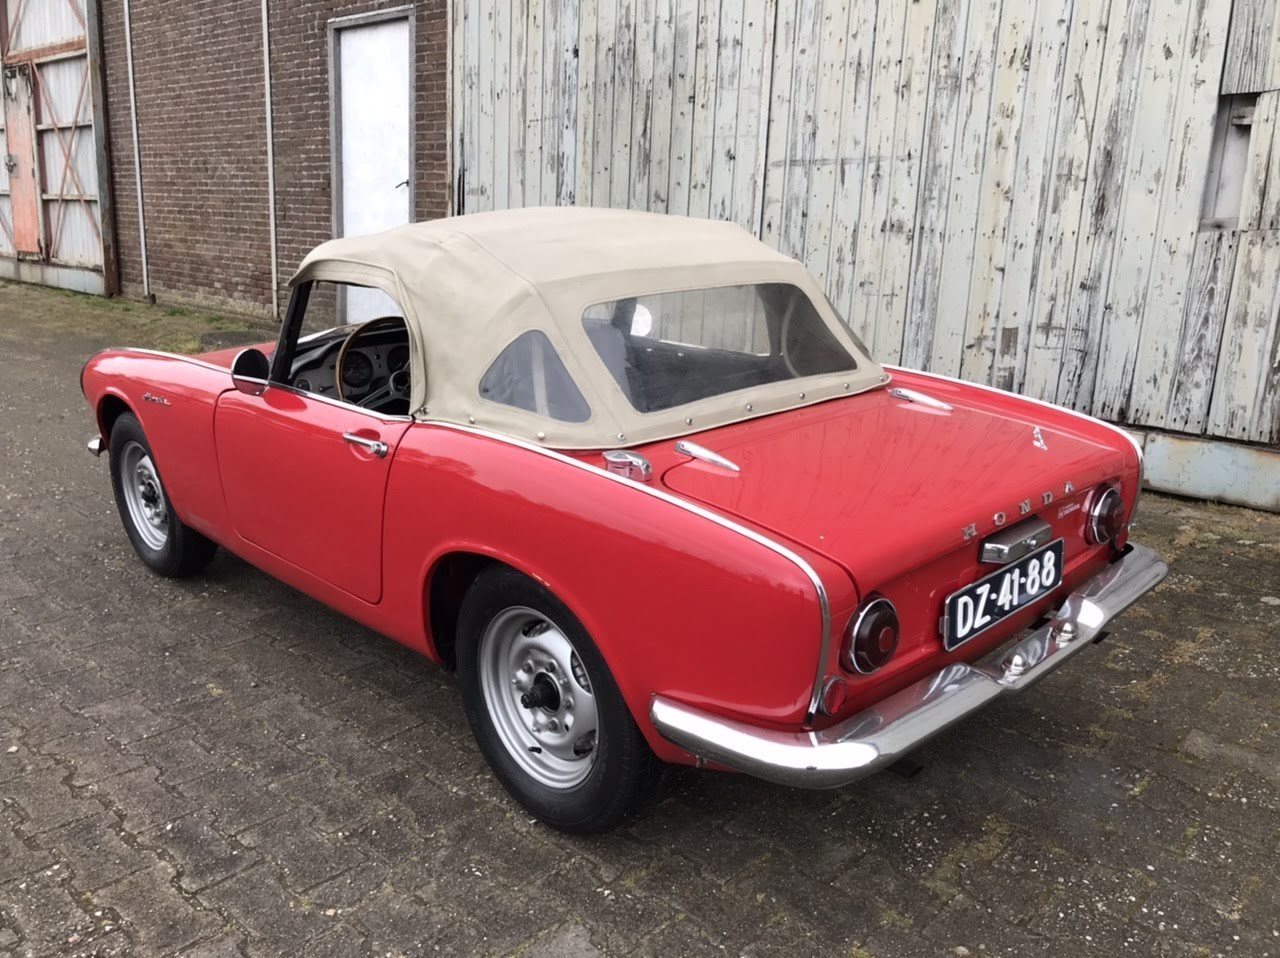 1966 Honda S600 roadster. Very nice, rustfree  For Sale (picture 3 of 6)